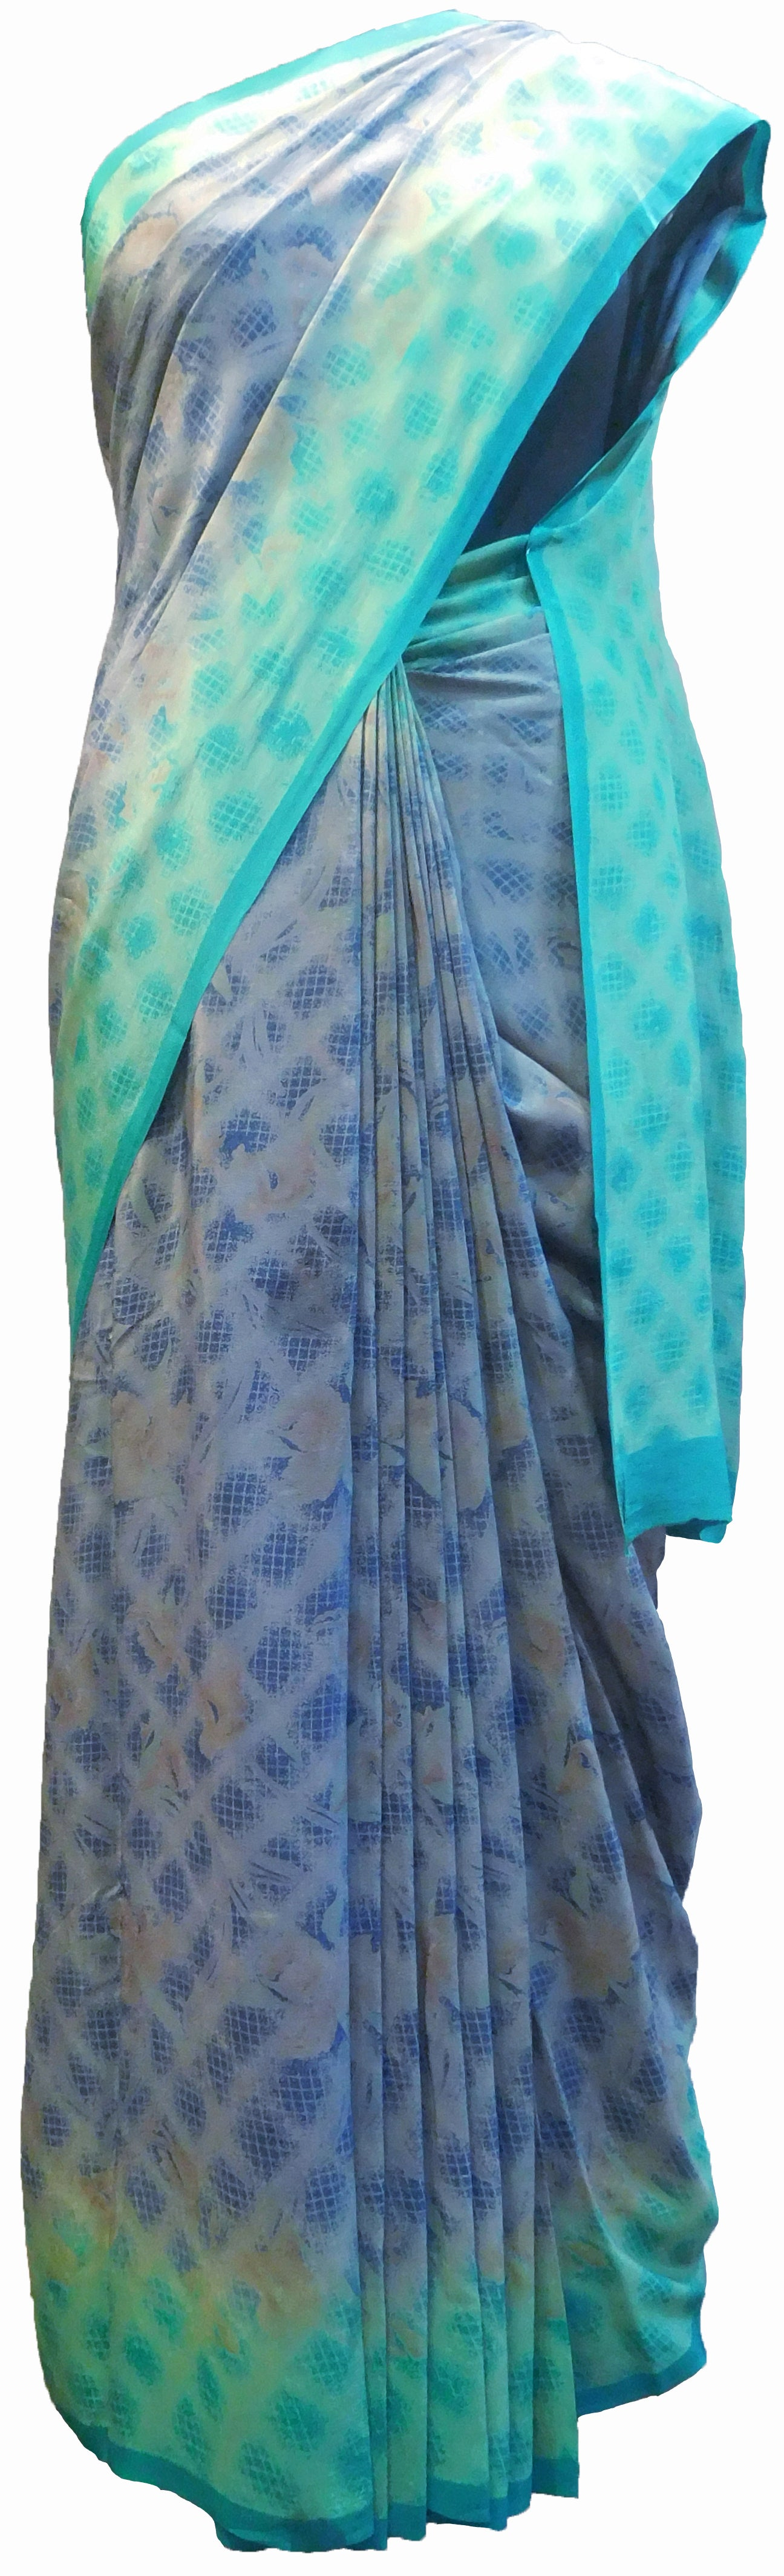 SMSAREE Multi Color Designer Wedding Partywear Pure Crepe Hand Brush Print Hand Embroidery Work Bridal Saree Sari With Blouse Piece RP351